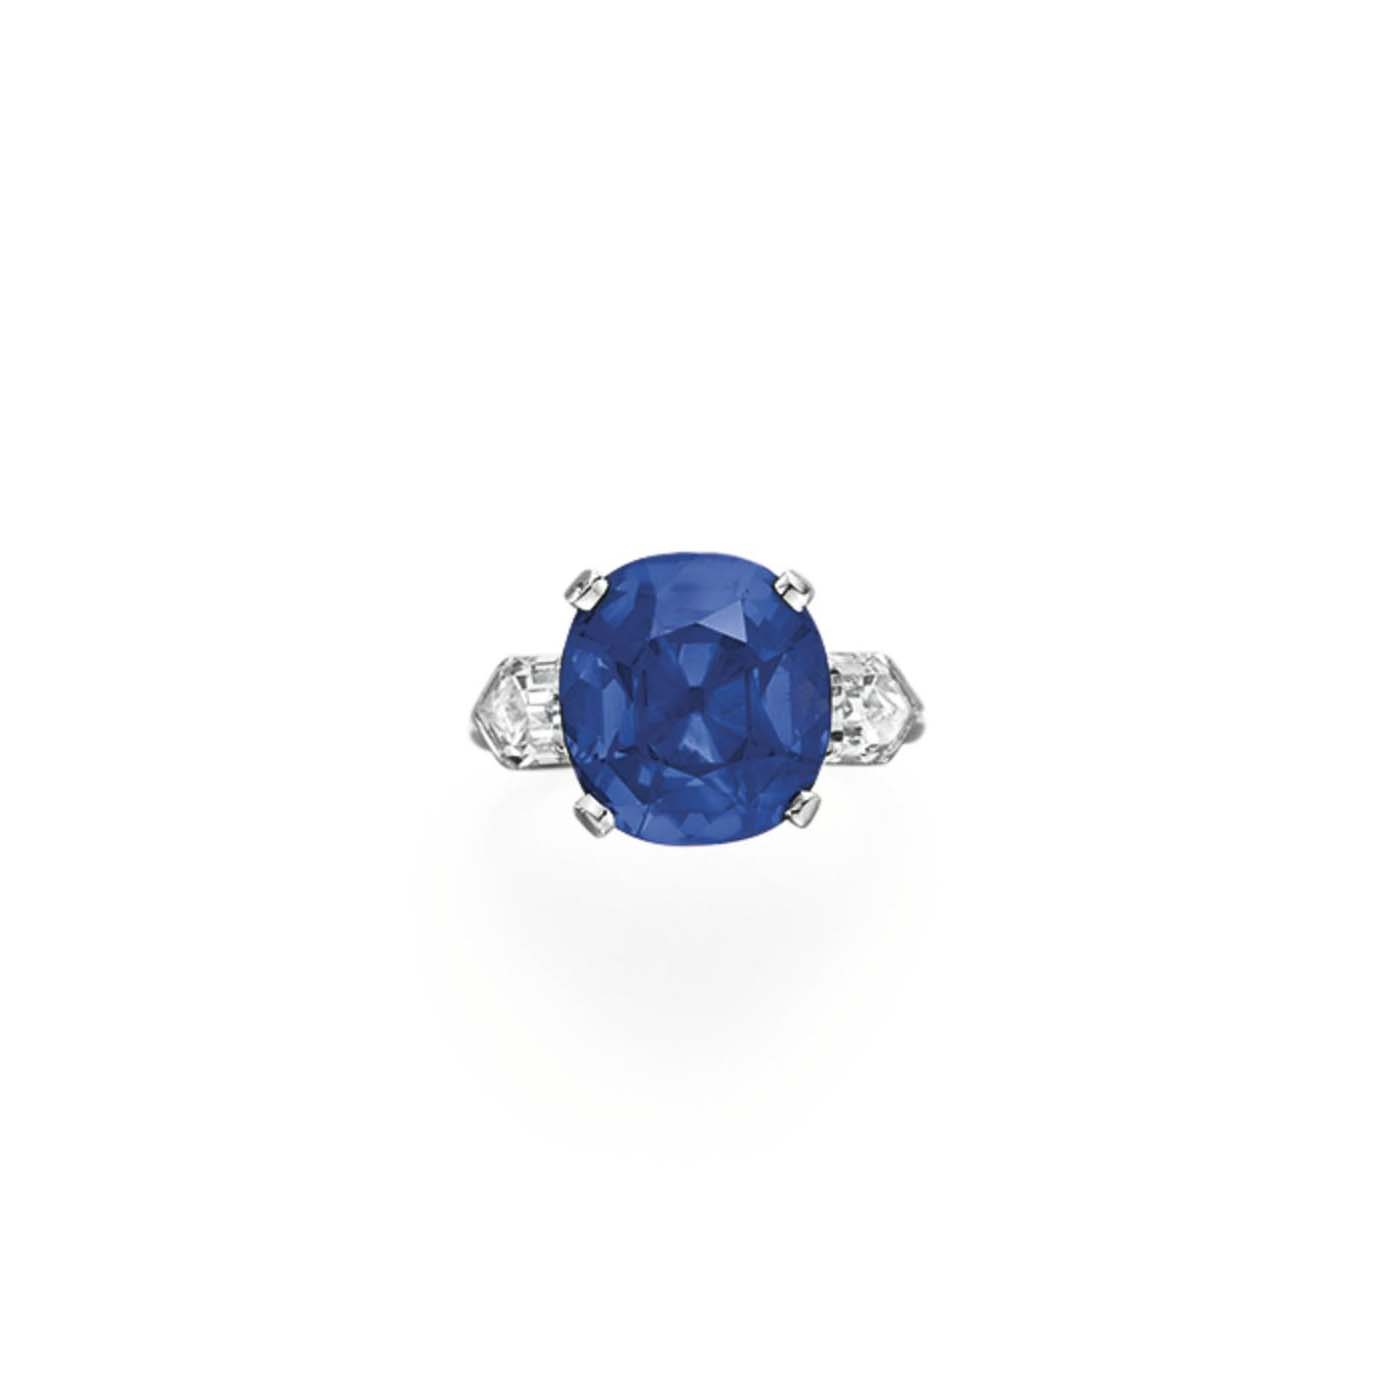 A FINE SAPPHIRE AND DIAMOND RING, BY TIFFANY & CO.